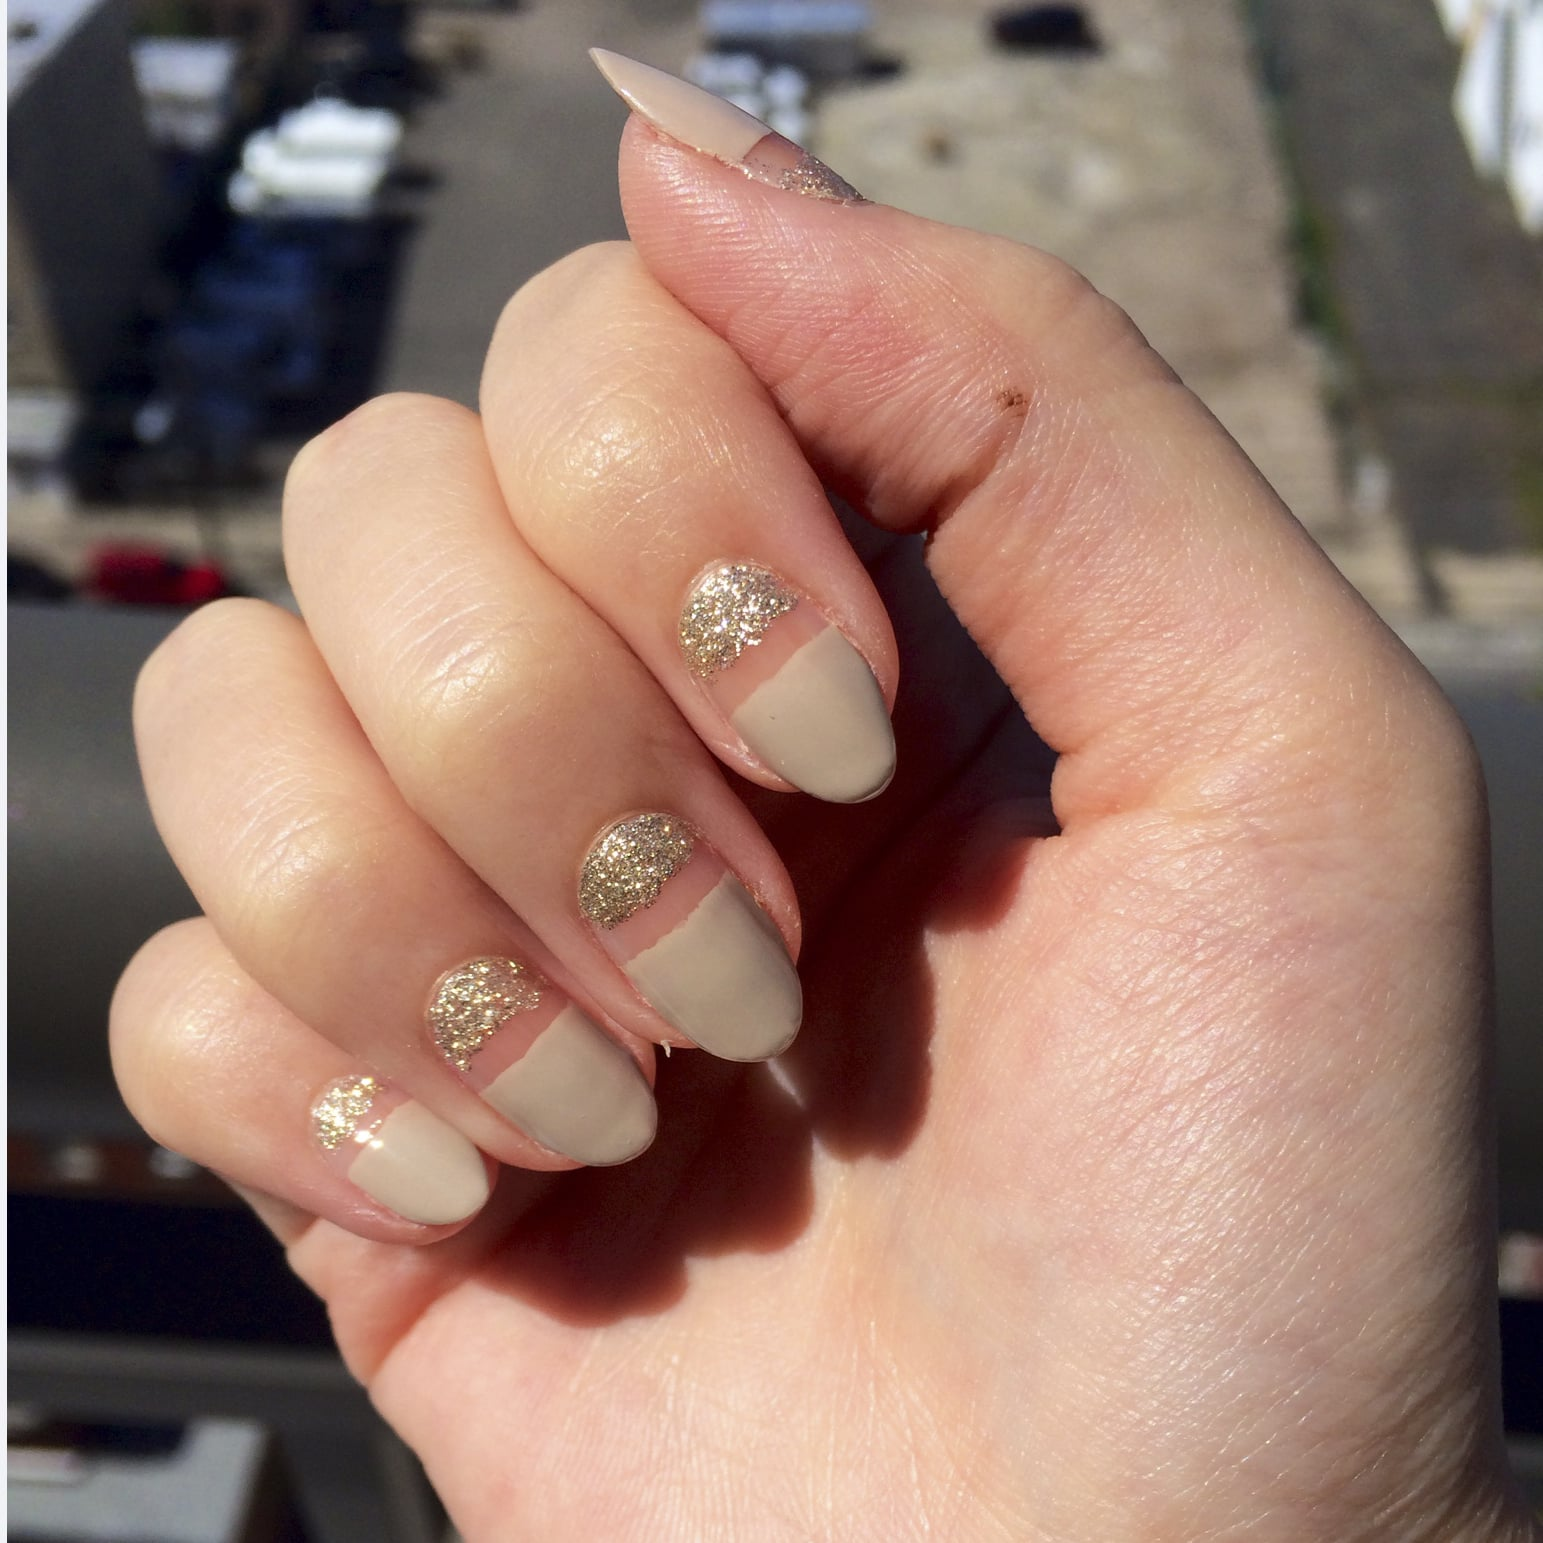 Sparkly Nail Art Design | POPSUGAR Beauty